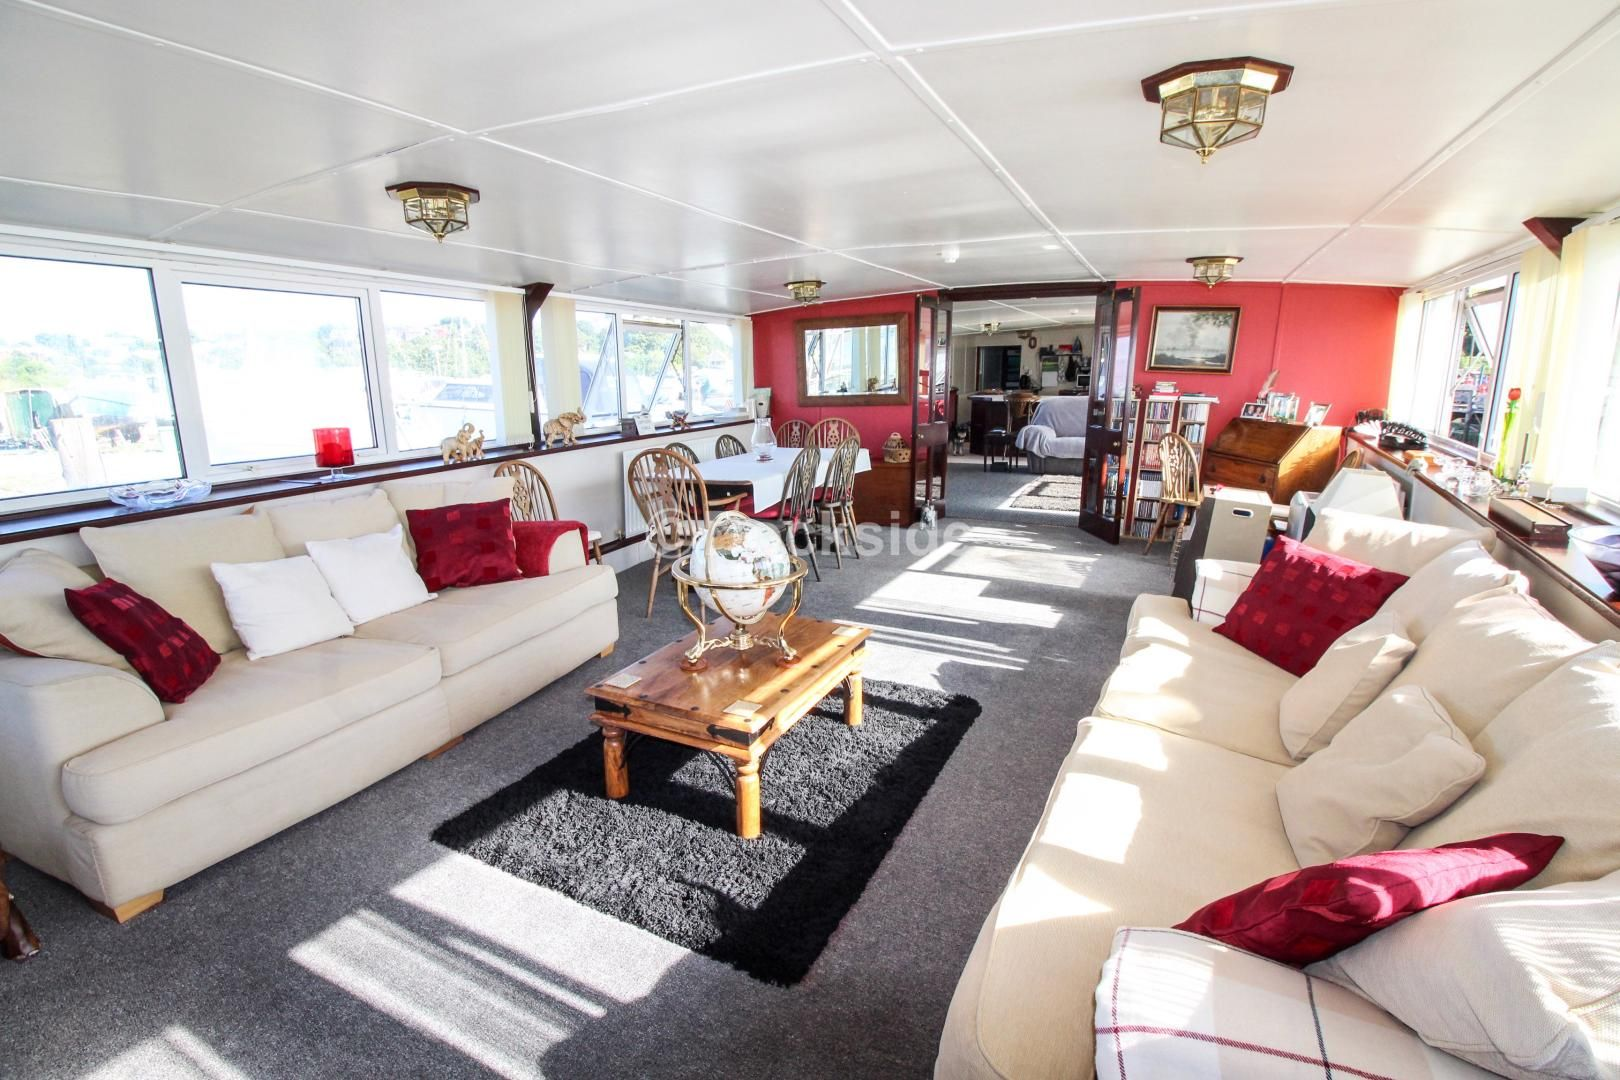 6 bed house boat for sale in Manor Lane, ME1